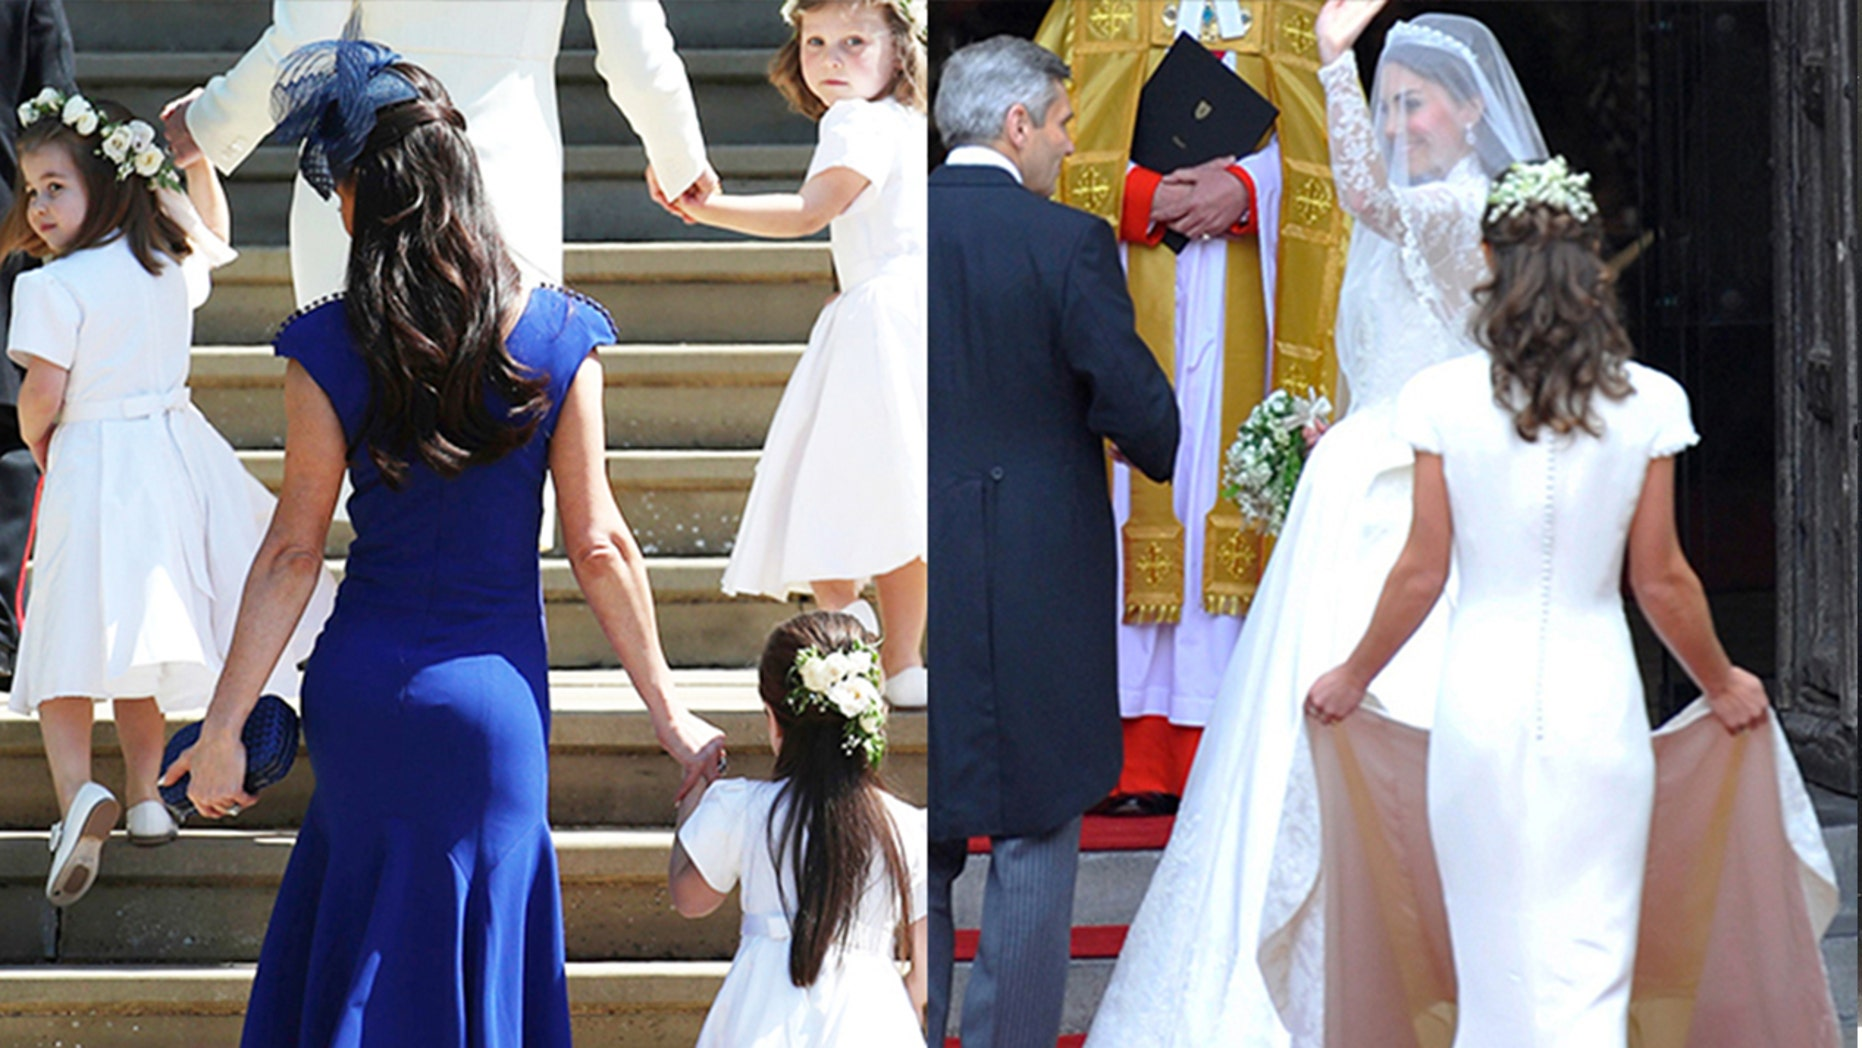 Jessica Mulroney's fitted frock is drawing comparisons to Pippa Middleton's 2011 royal wedding bridesmaid dress.